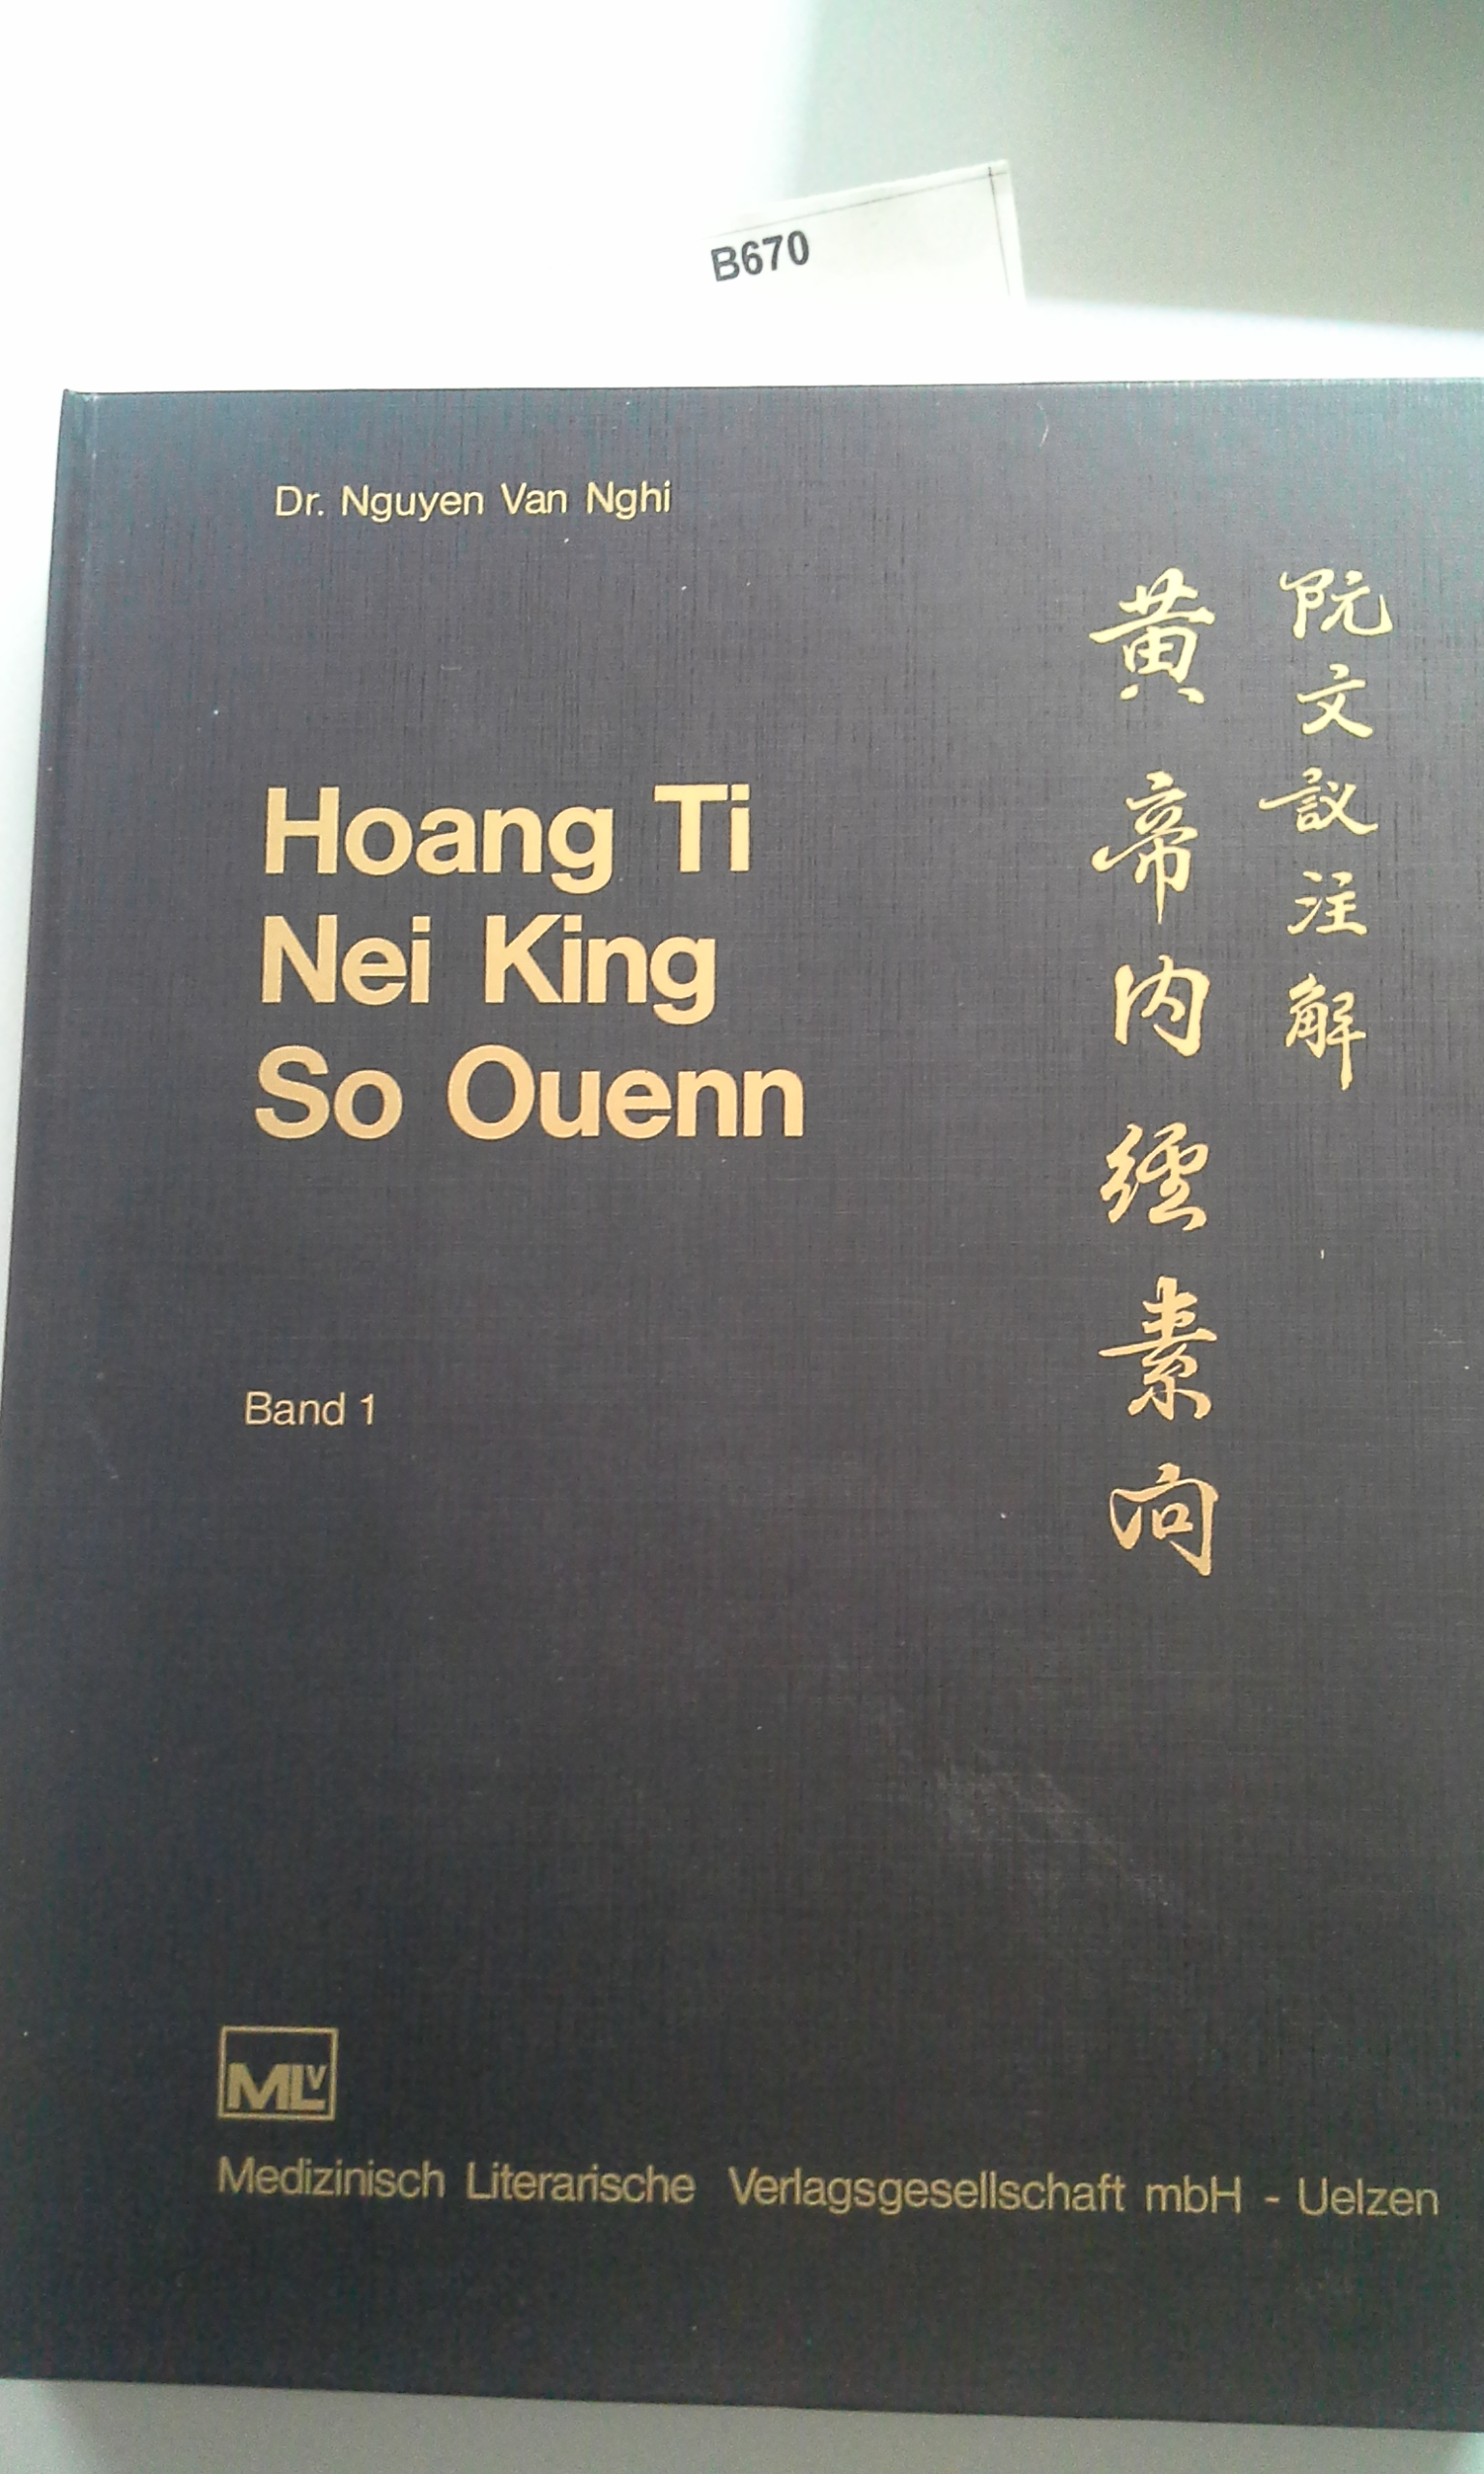 Buch: B670 Hoang Ti Nei King So Ouenn